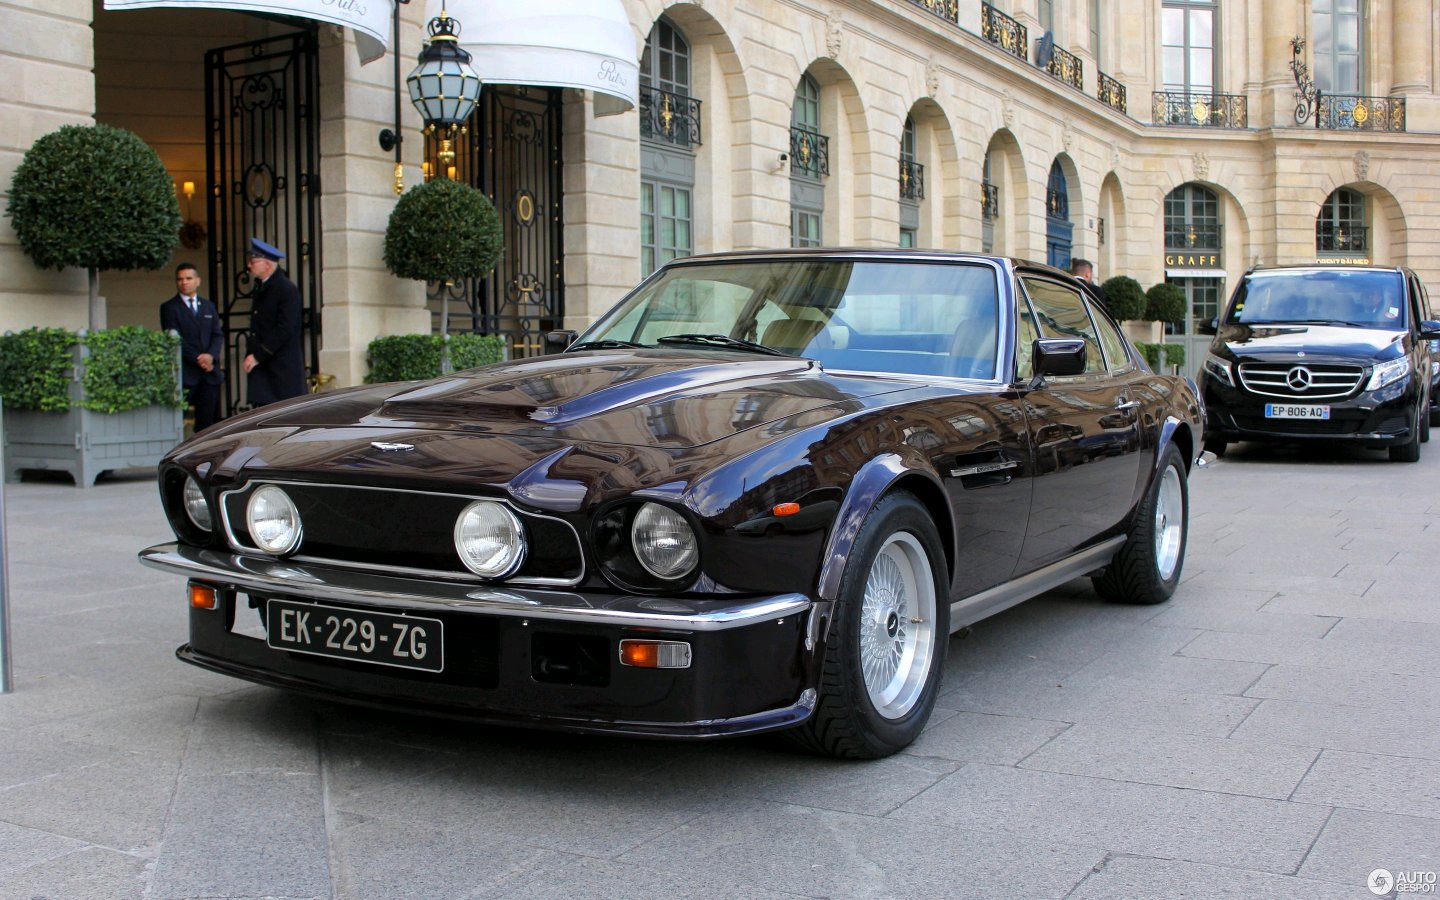 Why Does The Aston Martin V8 Vantage Look Like The Ford Mustang